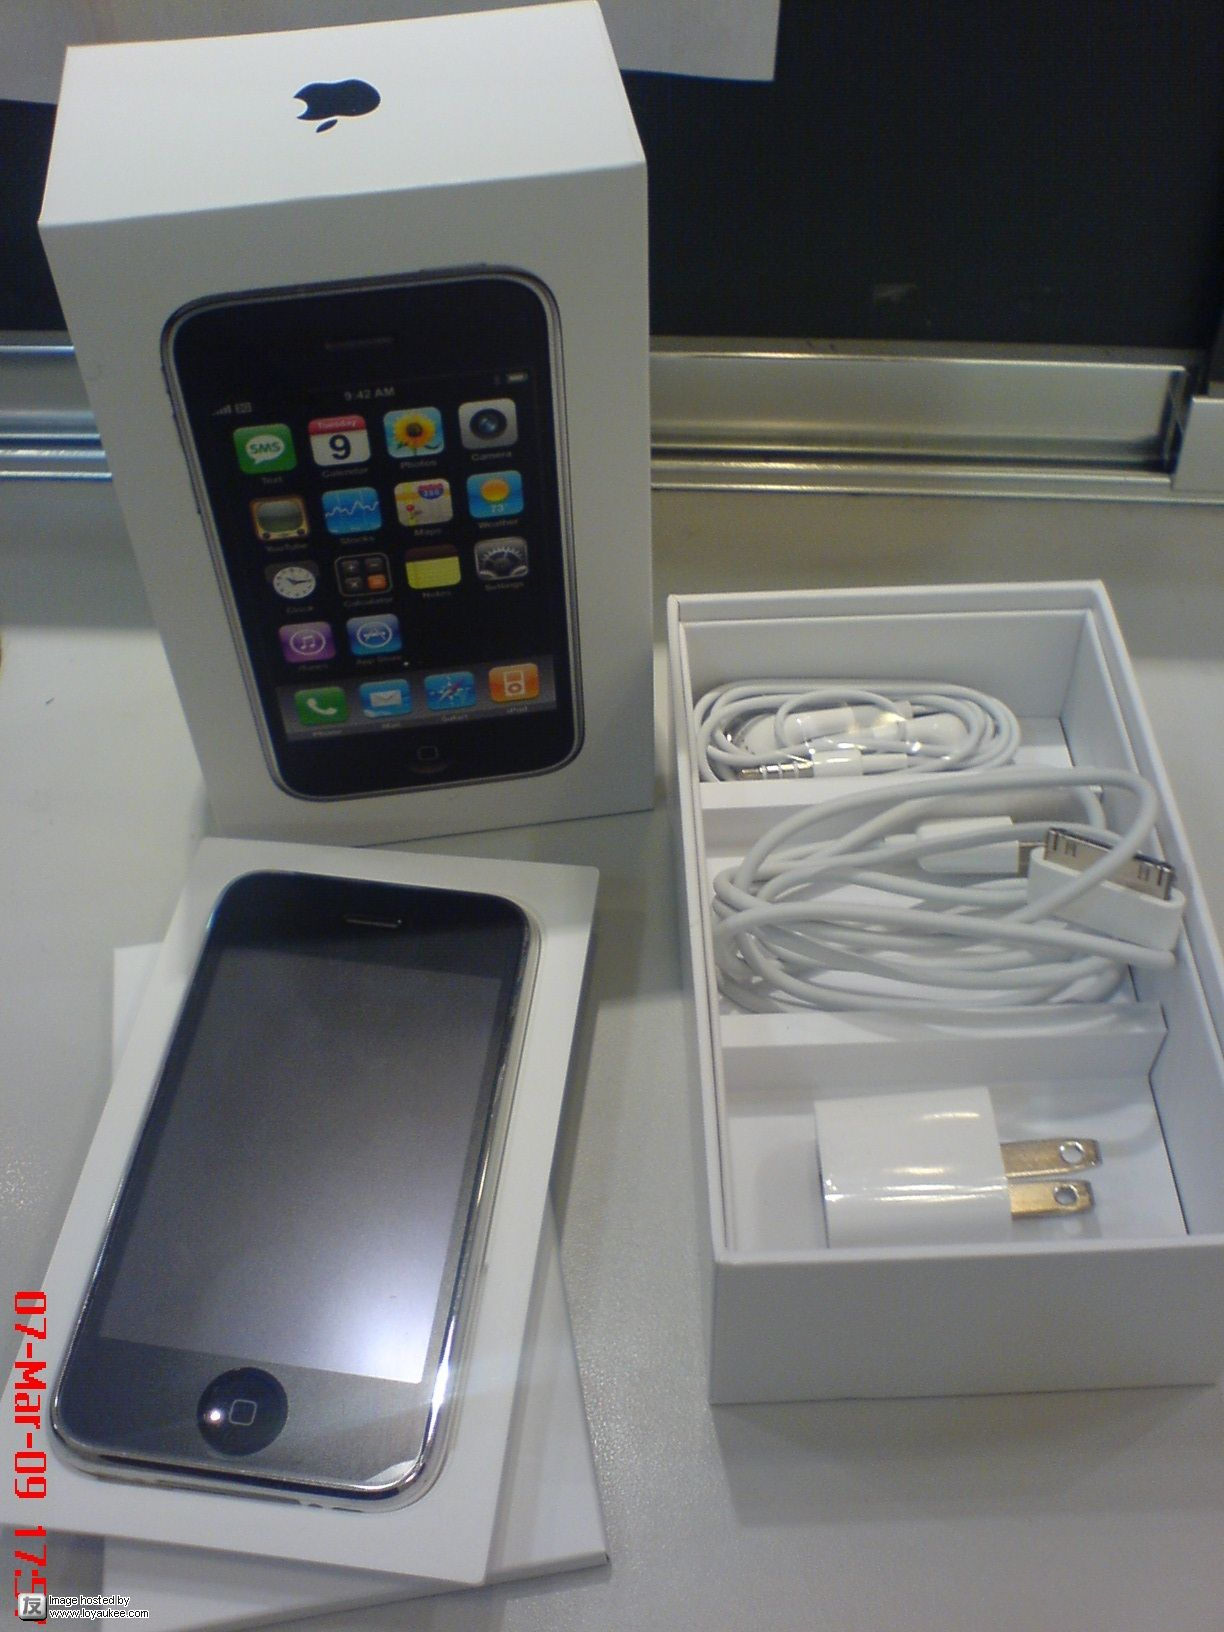 iphone unlocked for sale for 16gb iphone like new unlocked 2839